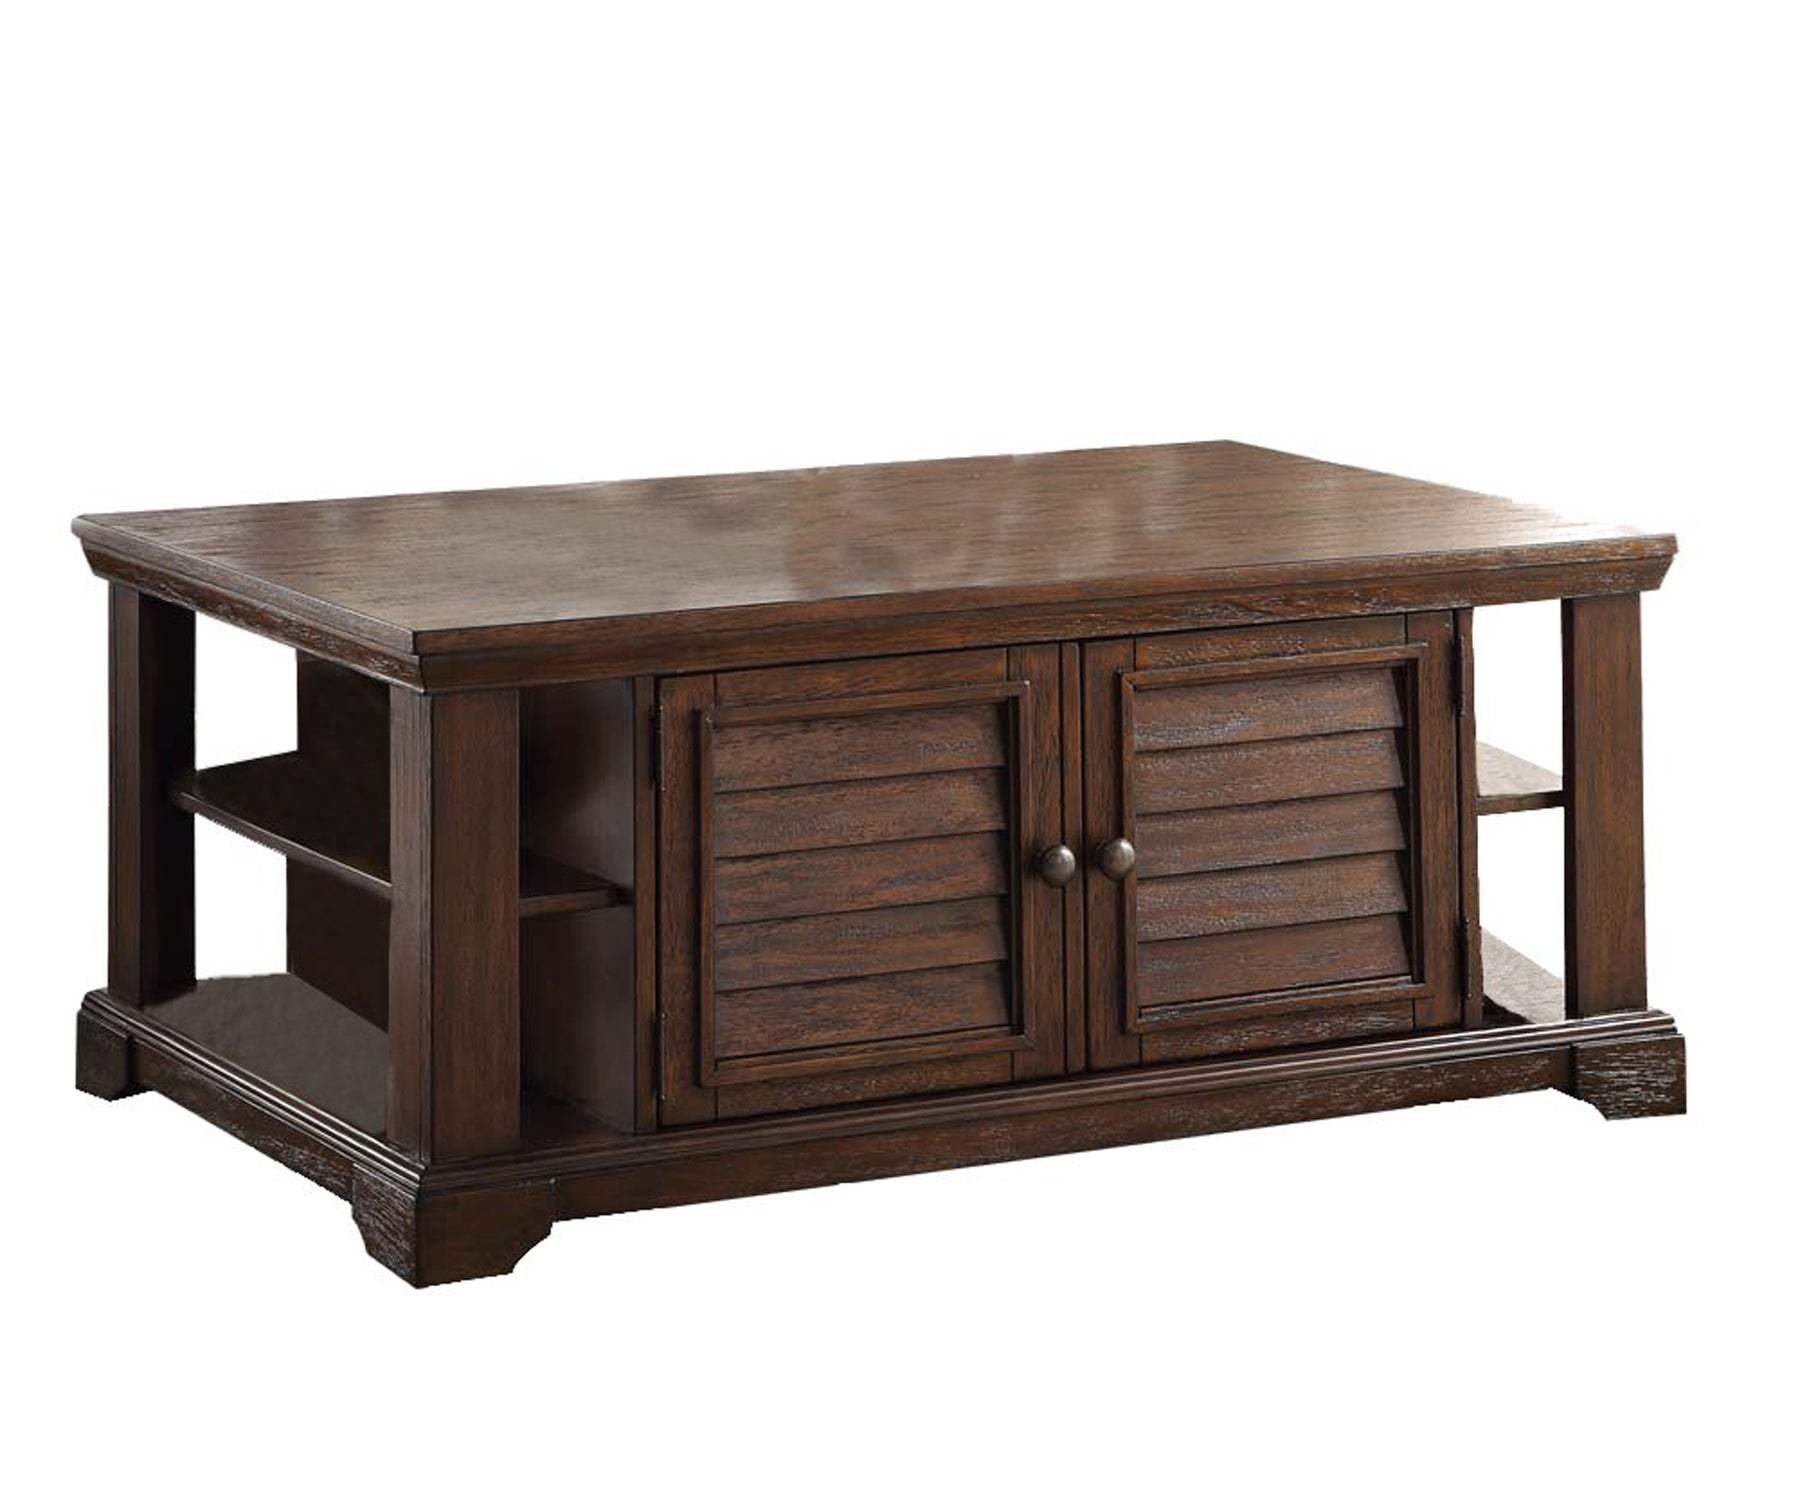 Lovely Coffee Table, Dark Oak Brown